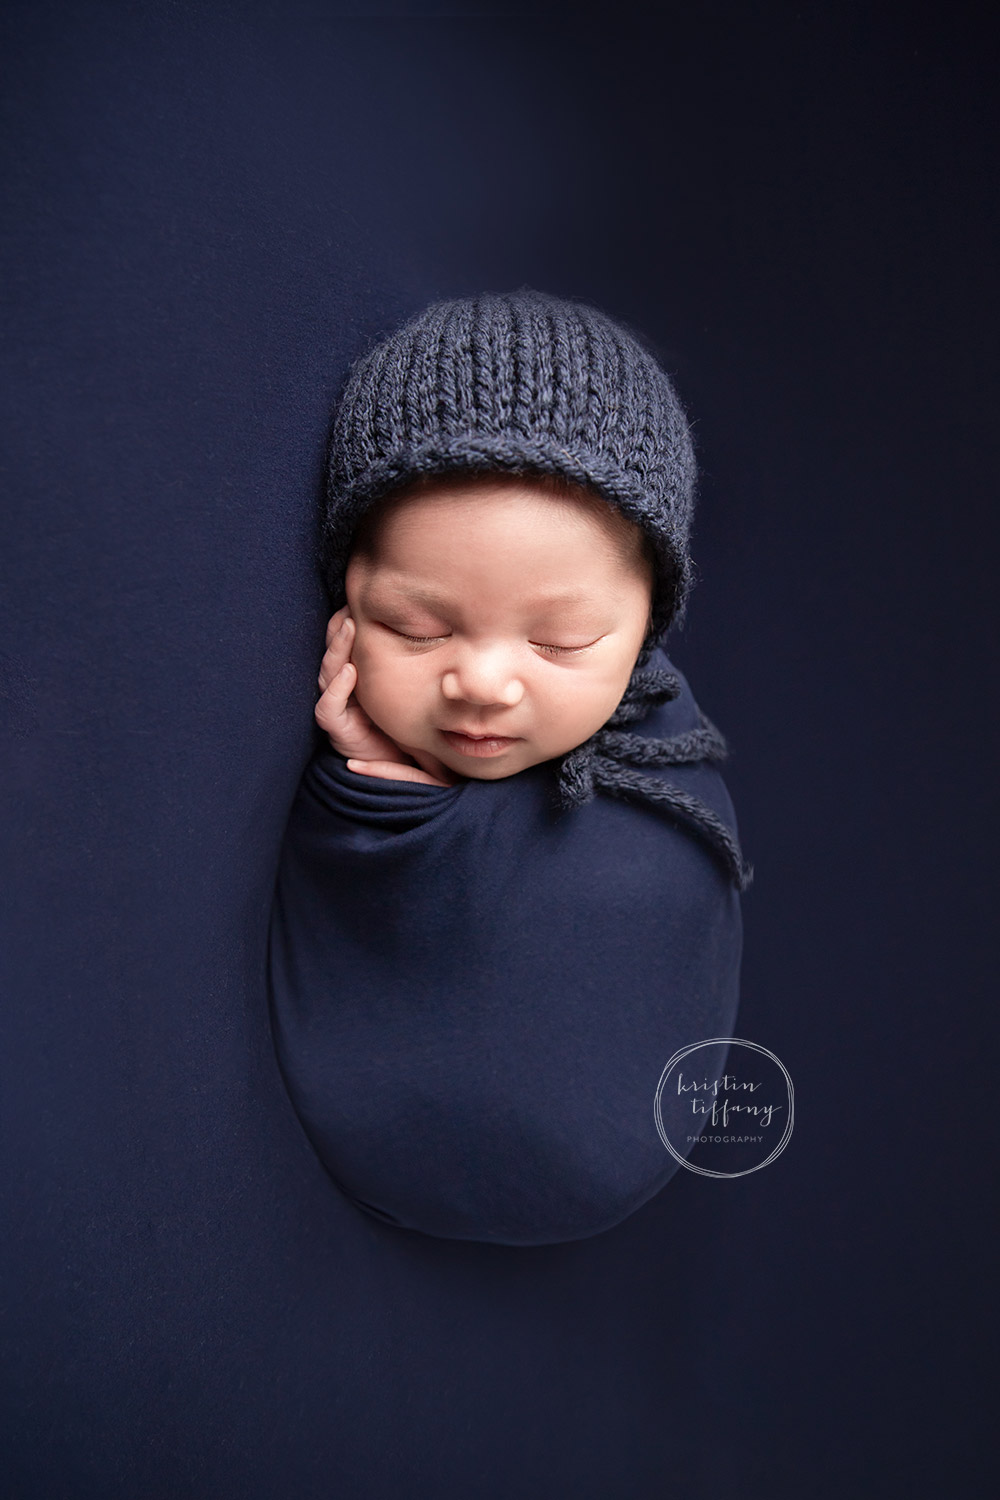 a photo of a baby boy at his newborn photoshoot